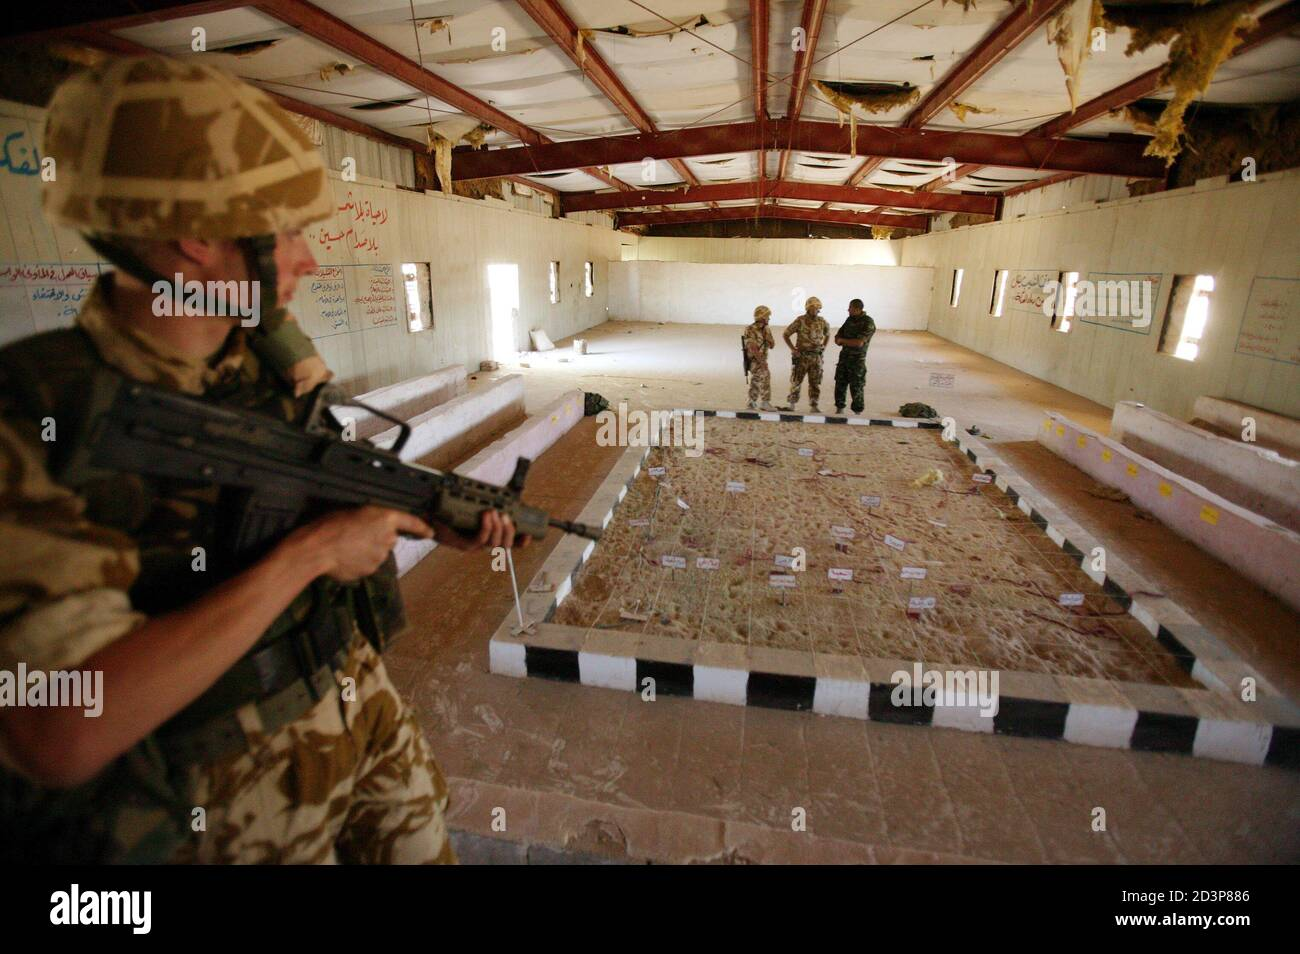 British Soldiers Examine The Briefing Room At An Abandoned Iraqi Base Discovered By Members Of 2